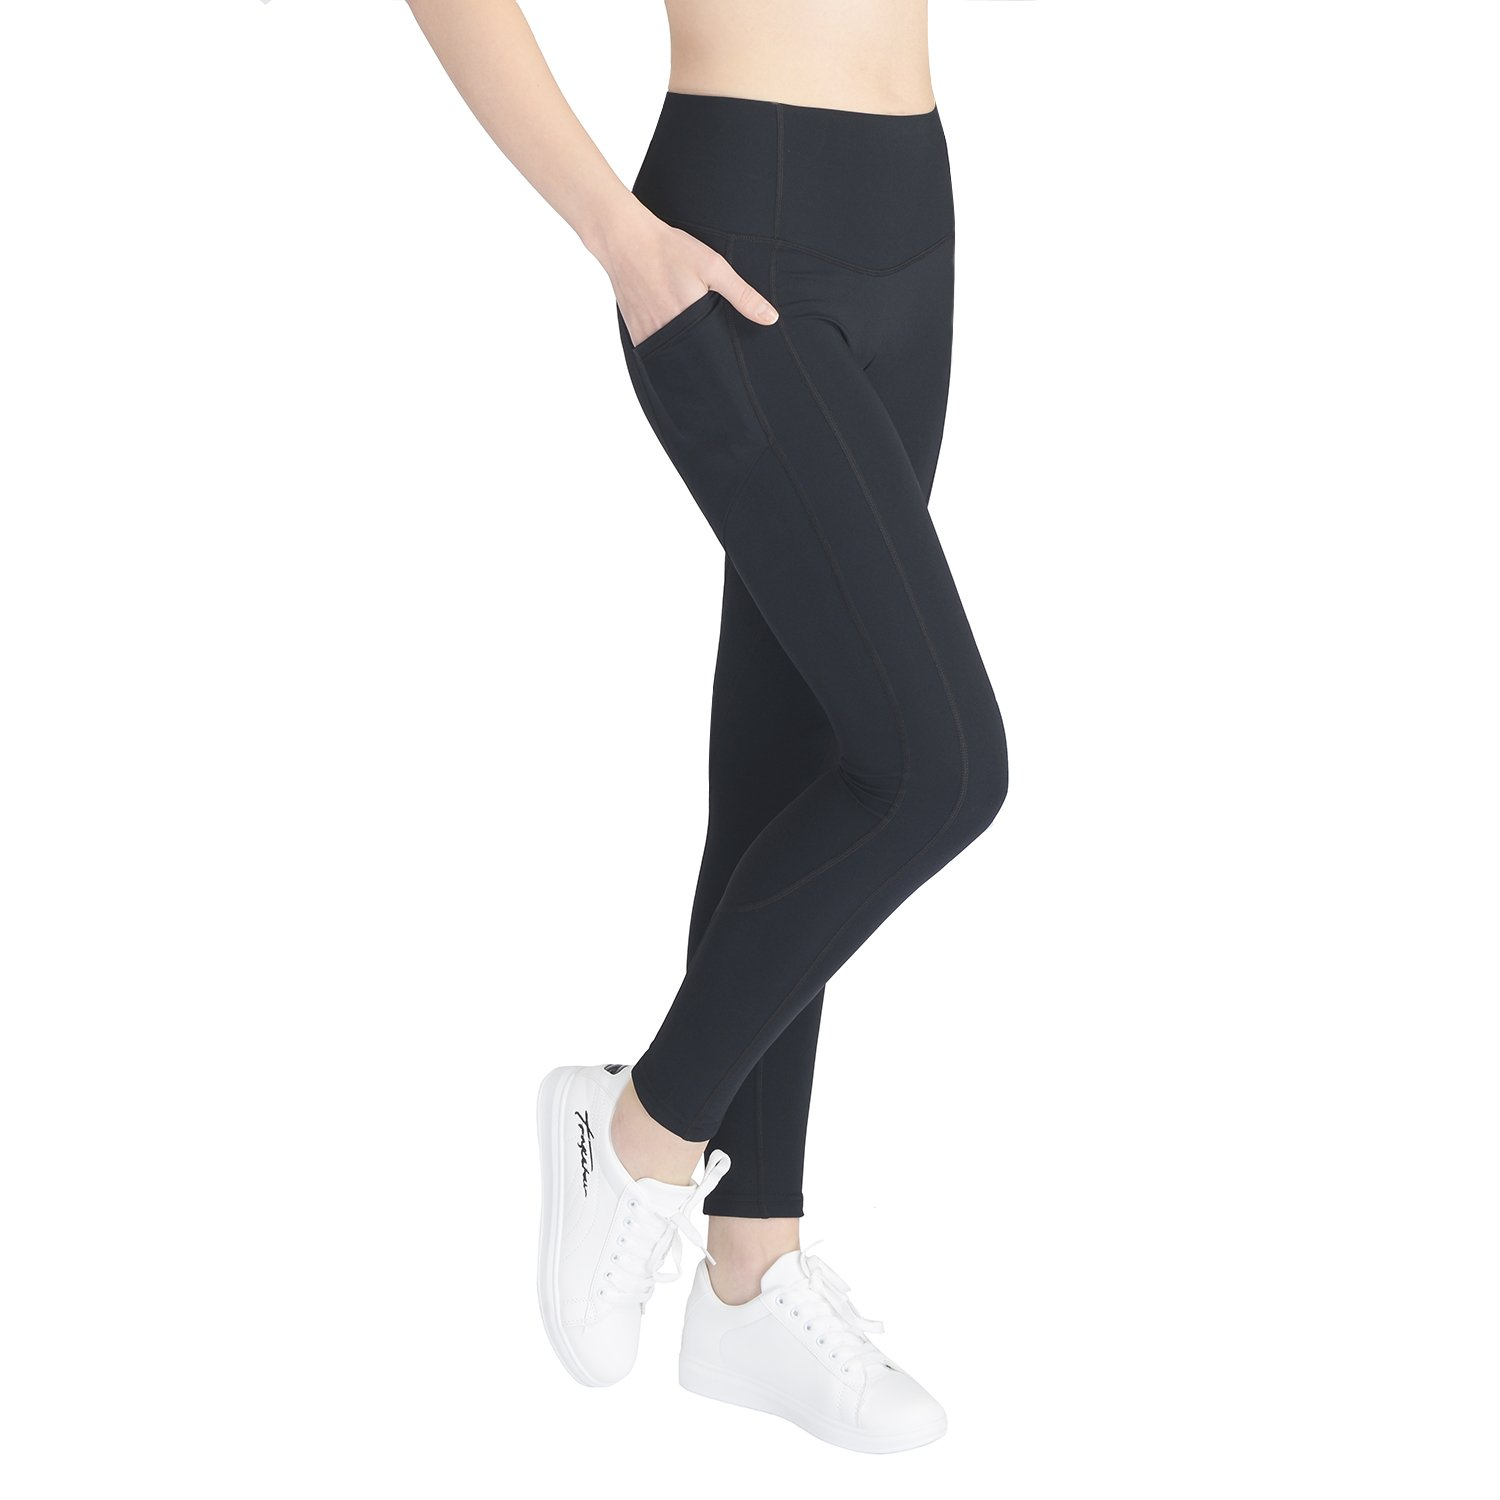 3158f3b282 4-way stretch fabric with High Waist Tummy Control & Hidden Pockets workout  leggings. Fits for variety of exercises or everyday use. ANKLE YOGA PANTS:  ...